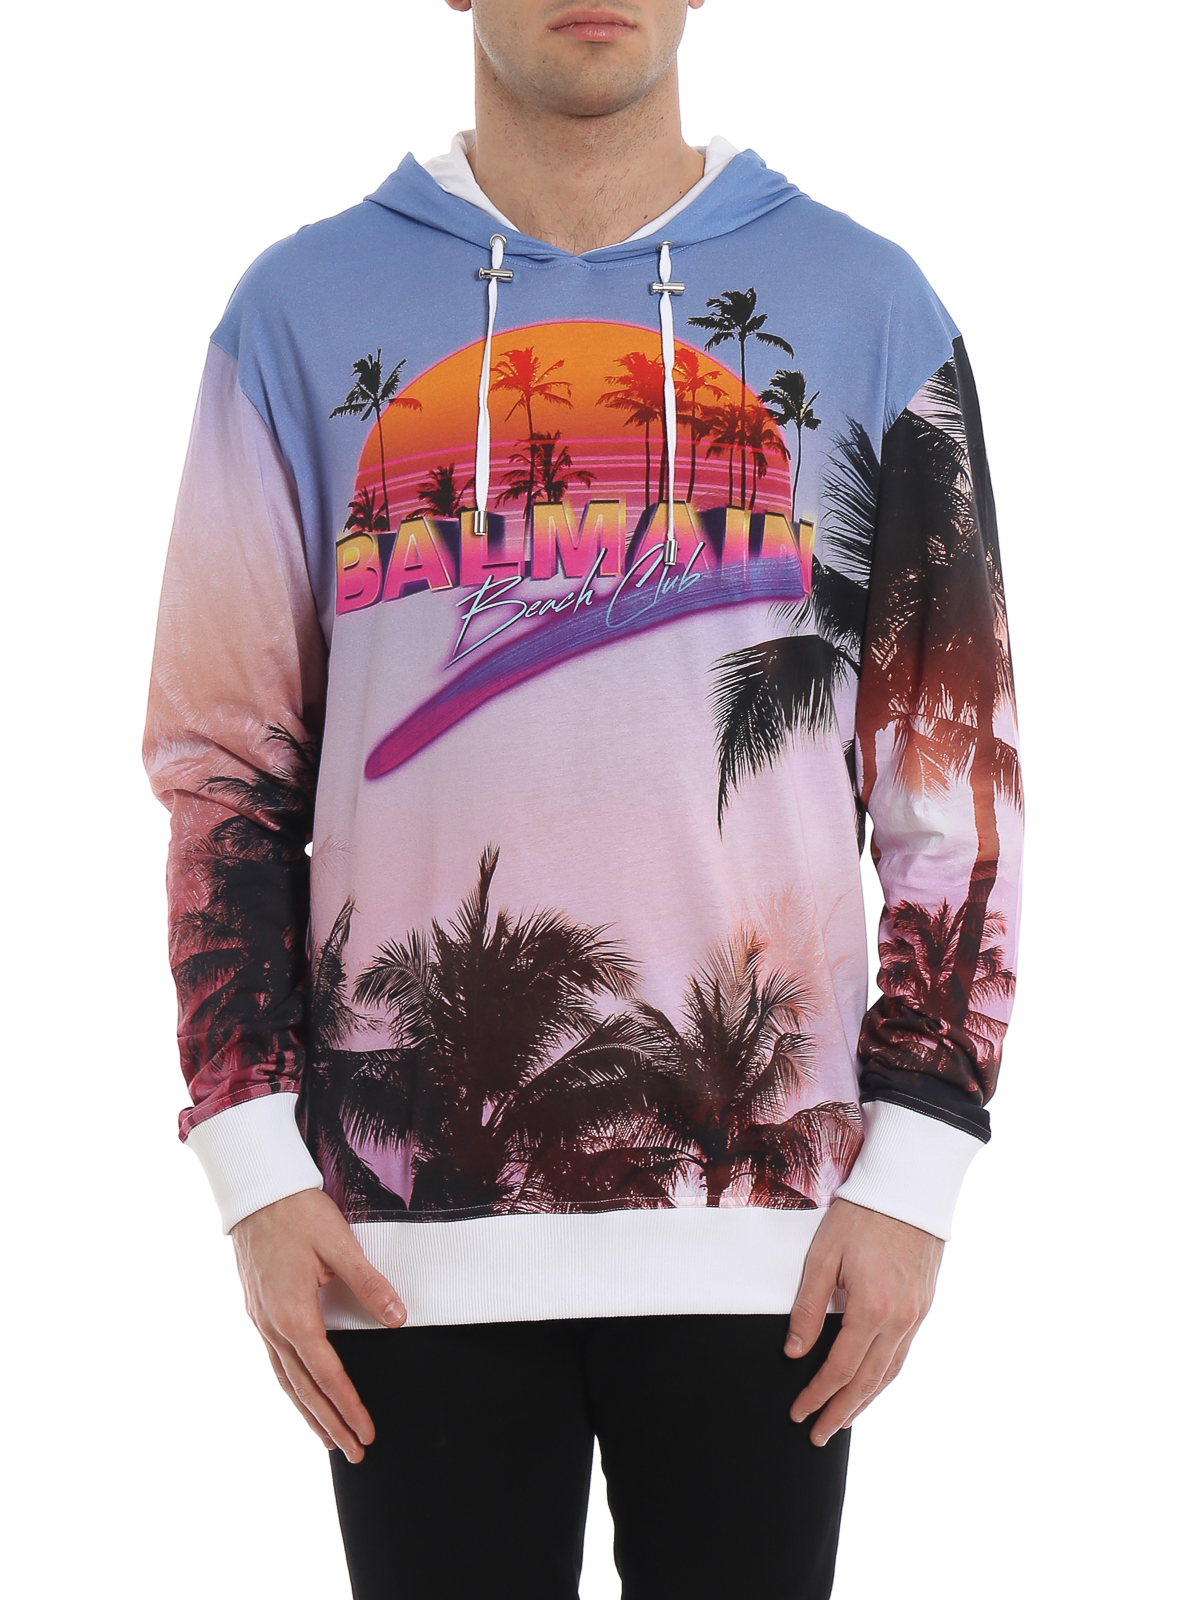 75beabf8 Men · Clothing · Bags · Shoes · Shop now. iKRIX Balmain: Sweatshirts &  Sweaters - Balmain Beach Club print cotton hoodie